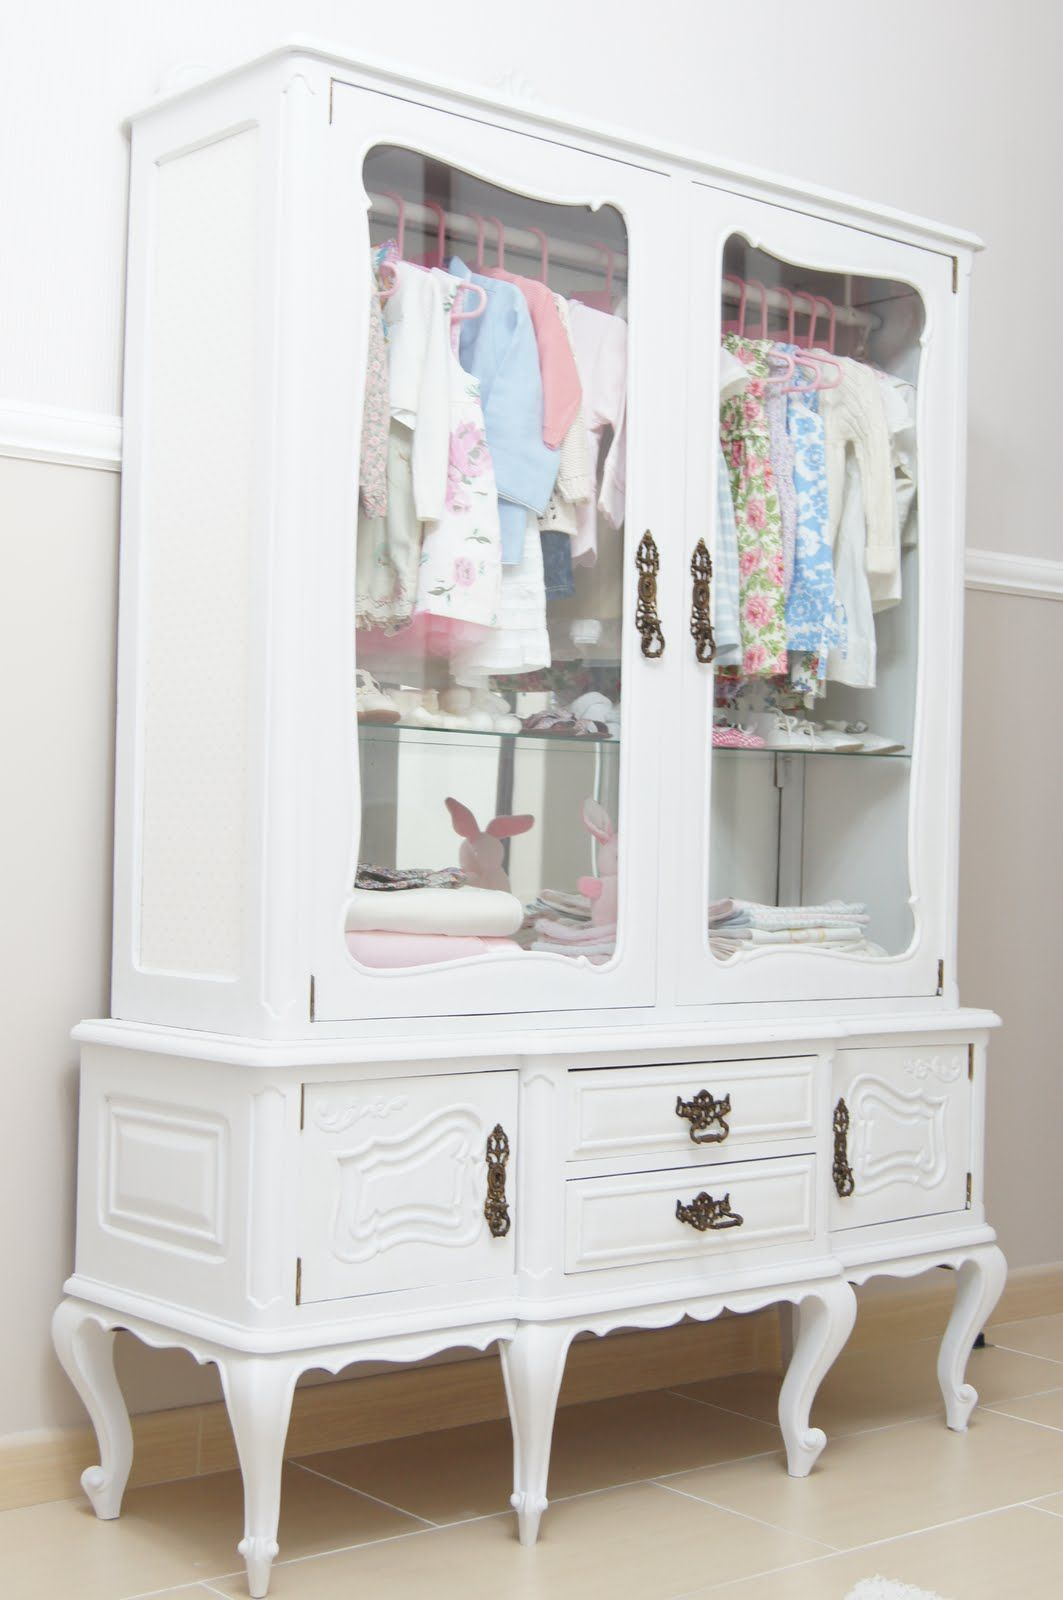 Best 25+ Clothing Armoire Ideas On Pinterest | Amoire Storage, Rustic Kids  Hampers And Rustic Armoires And Wardrobes